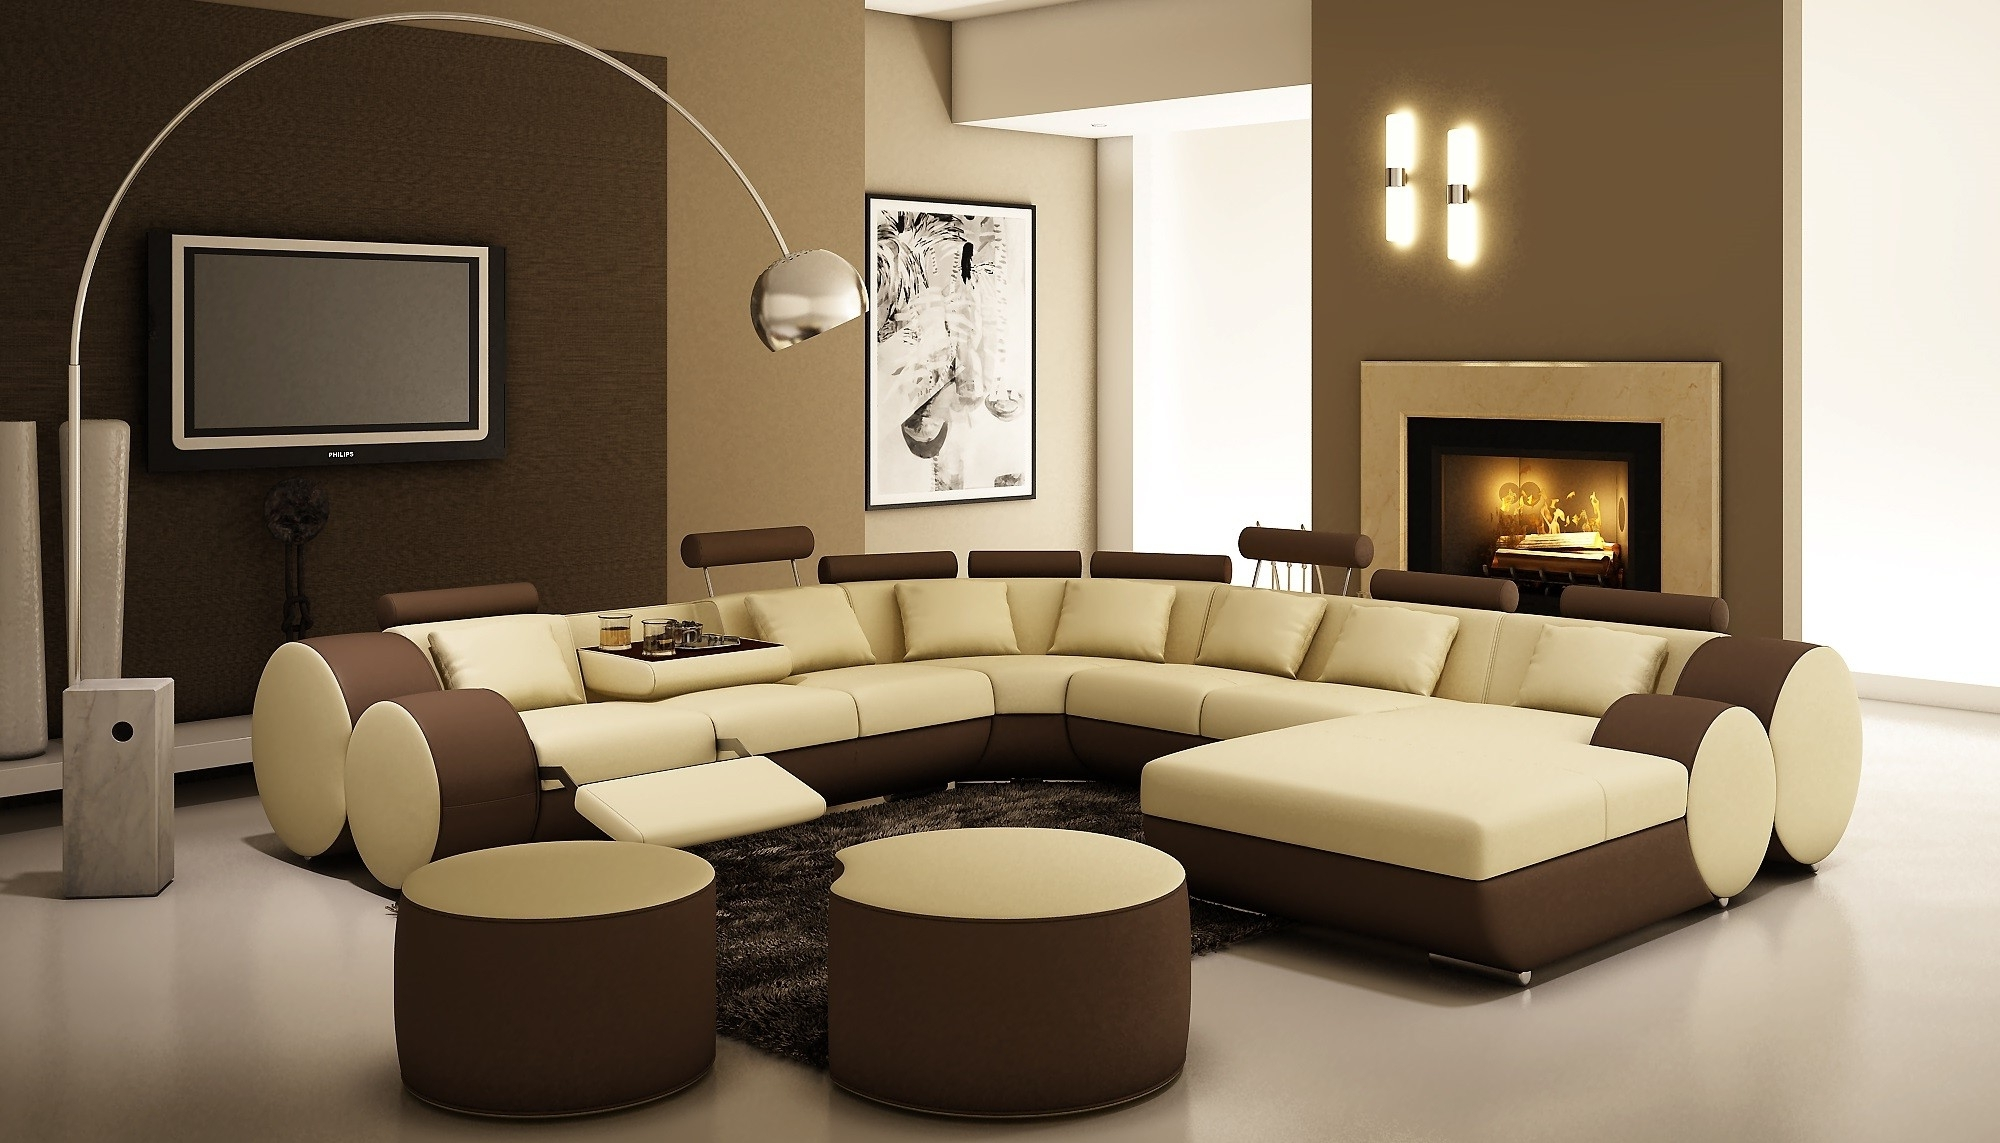 Widely Used Unique Sectional Sofas With Regard To Unique Sectional Sofas (View 2 of 15)